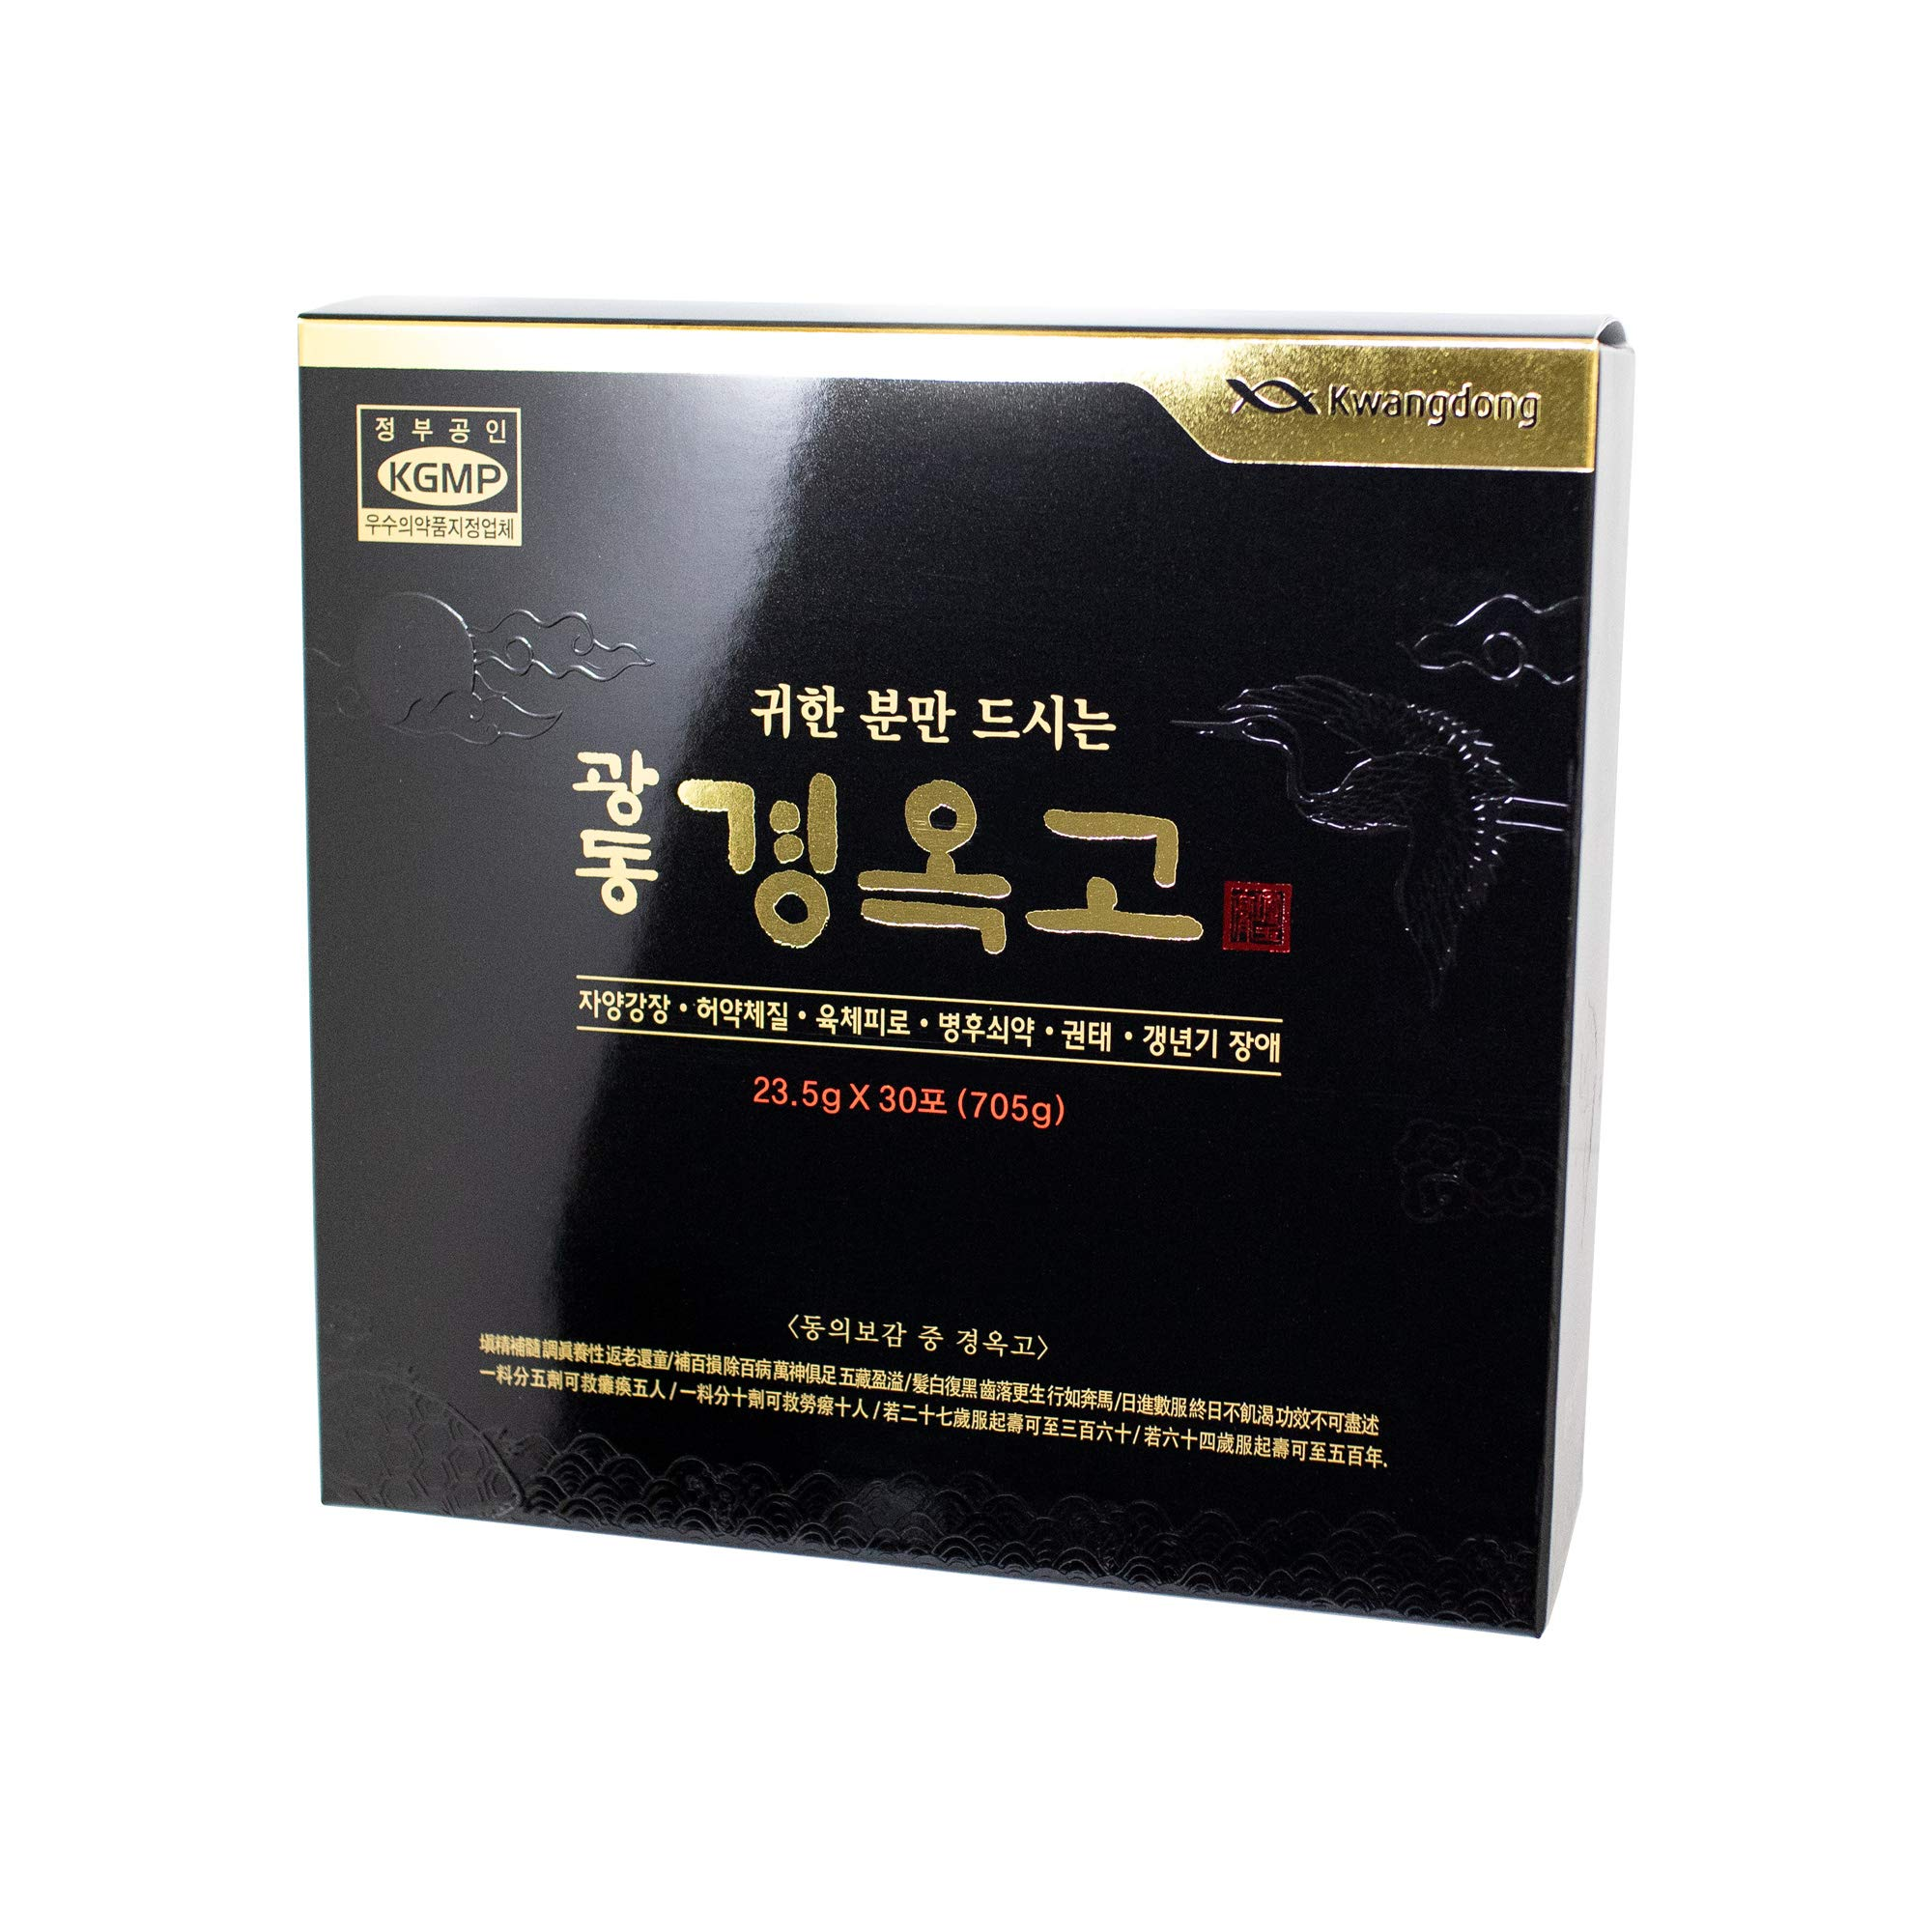 Kwang-Dong Kyung-Ok-Go Korean Nutritious Ginseng Tonic Individual Stick Pouches Gift Set (23.5g x 30 Stick Pouches) [광동제약 경옥고] + Korean Mulberry Paper HANJI Card